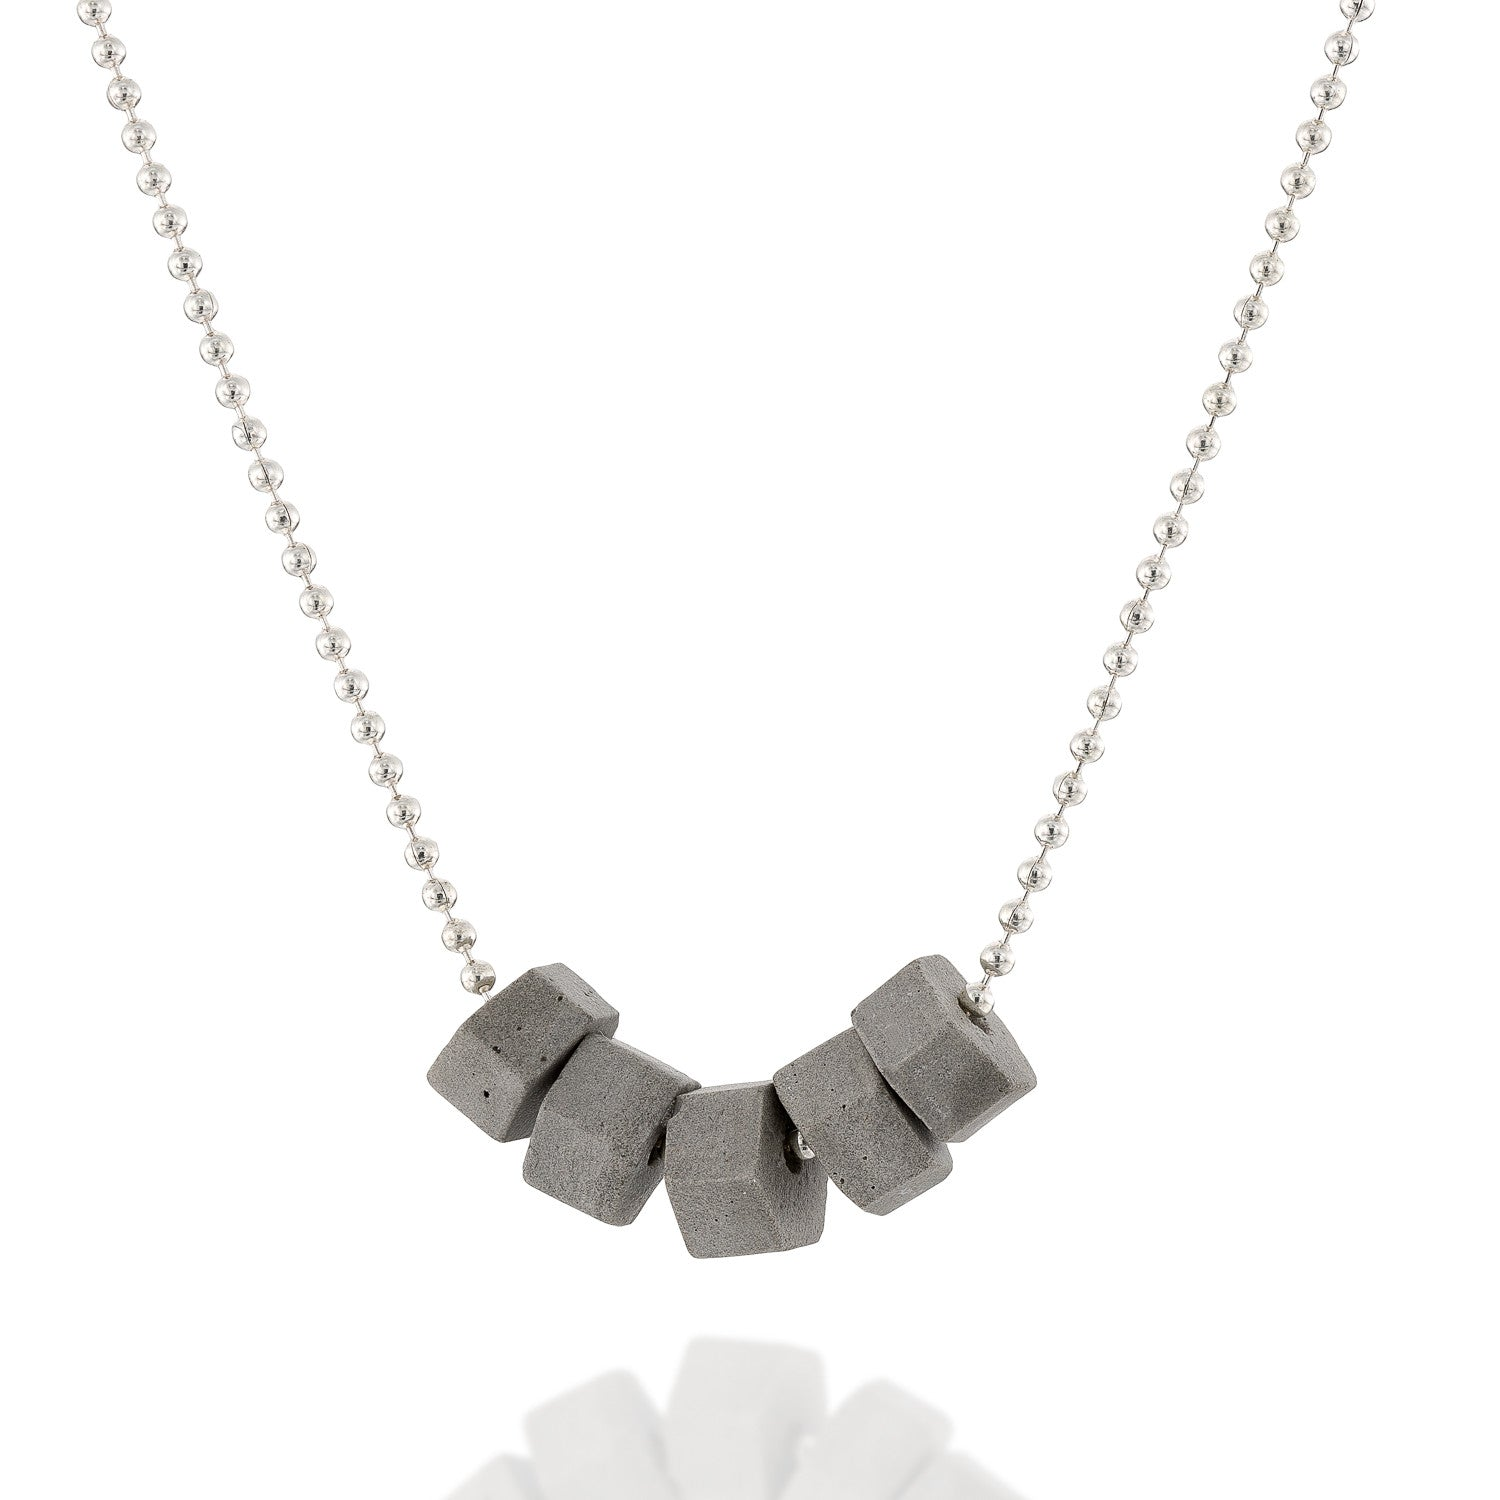 Hexagon Concrete Necklace by Baara Jewelry, Wabi-Sabi, Organic Materials, Unique Jewelry, Delicate Contemporary Necklace